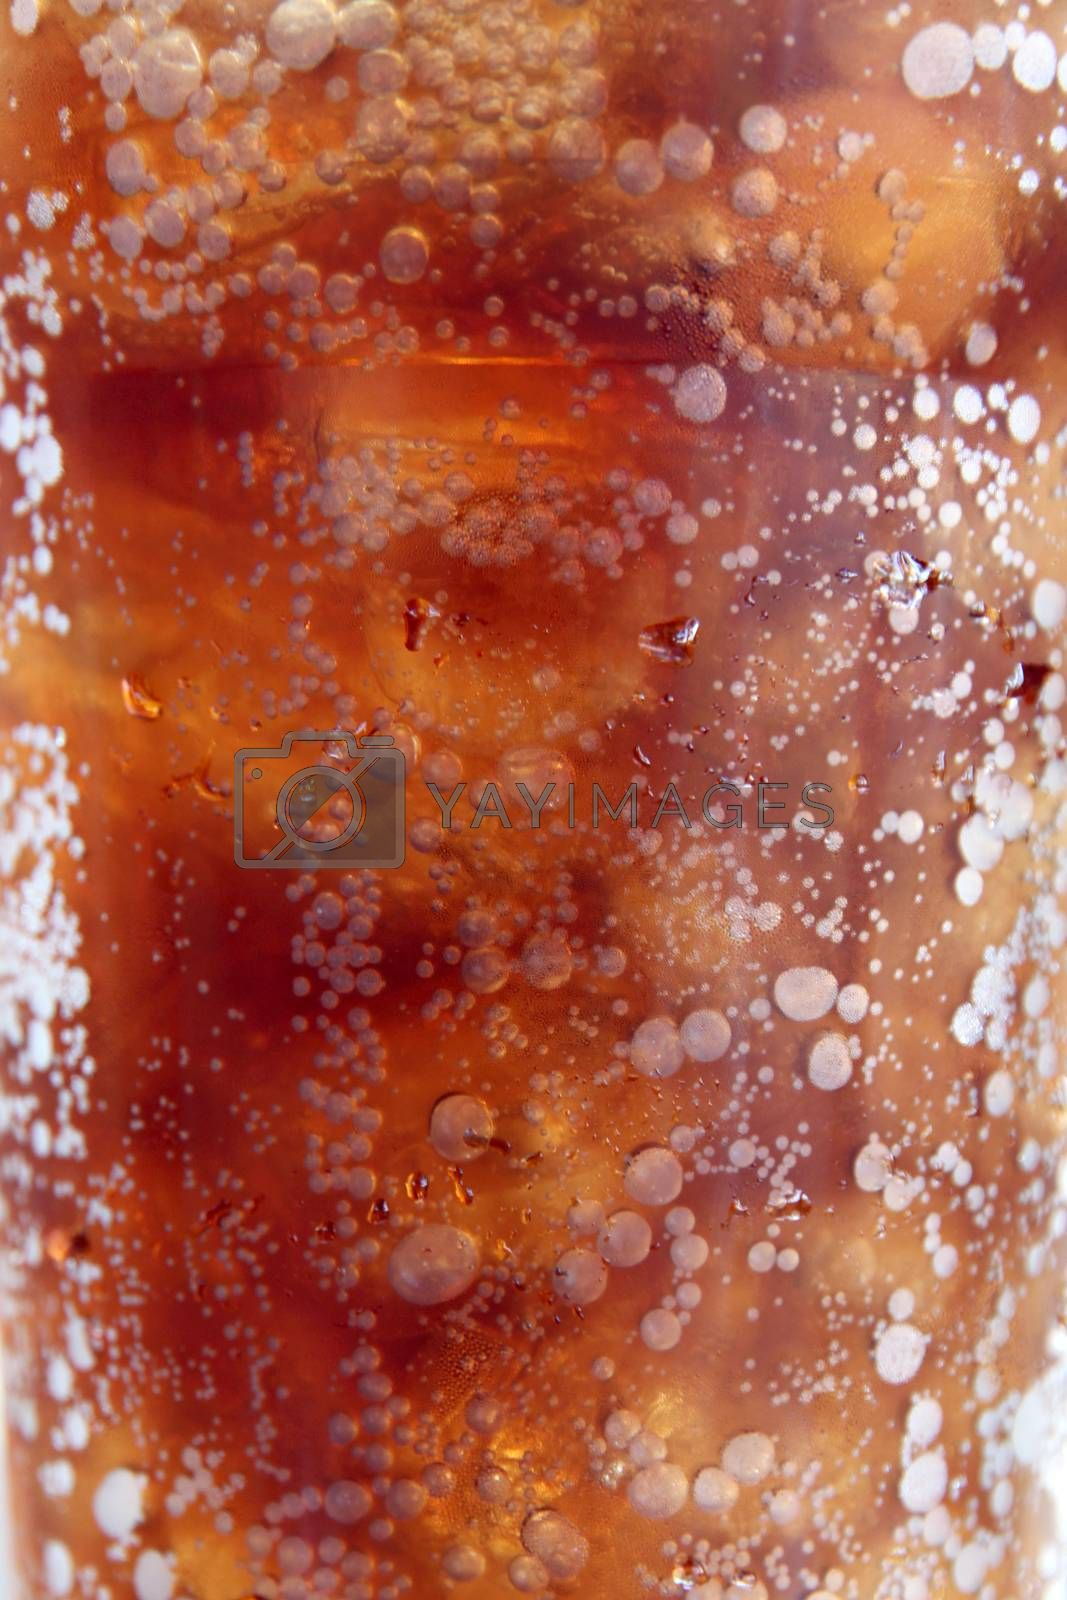 Zoom Picture of Cola drinks in plastic cup and tube to eat on the table.